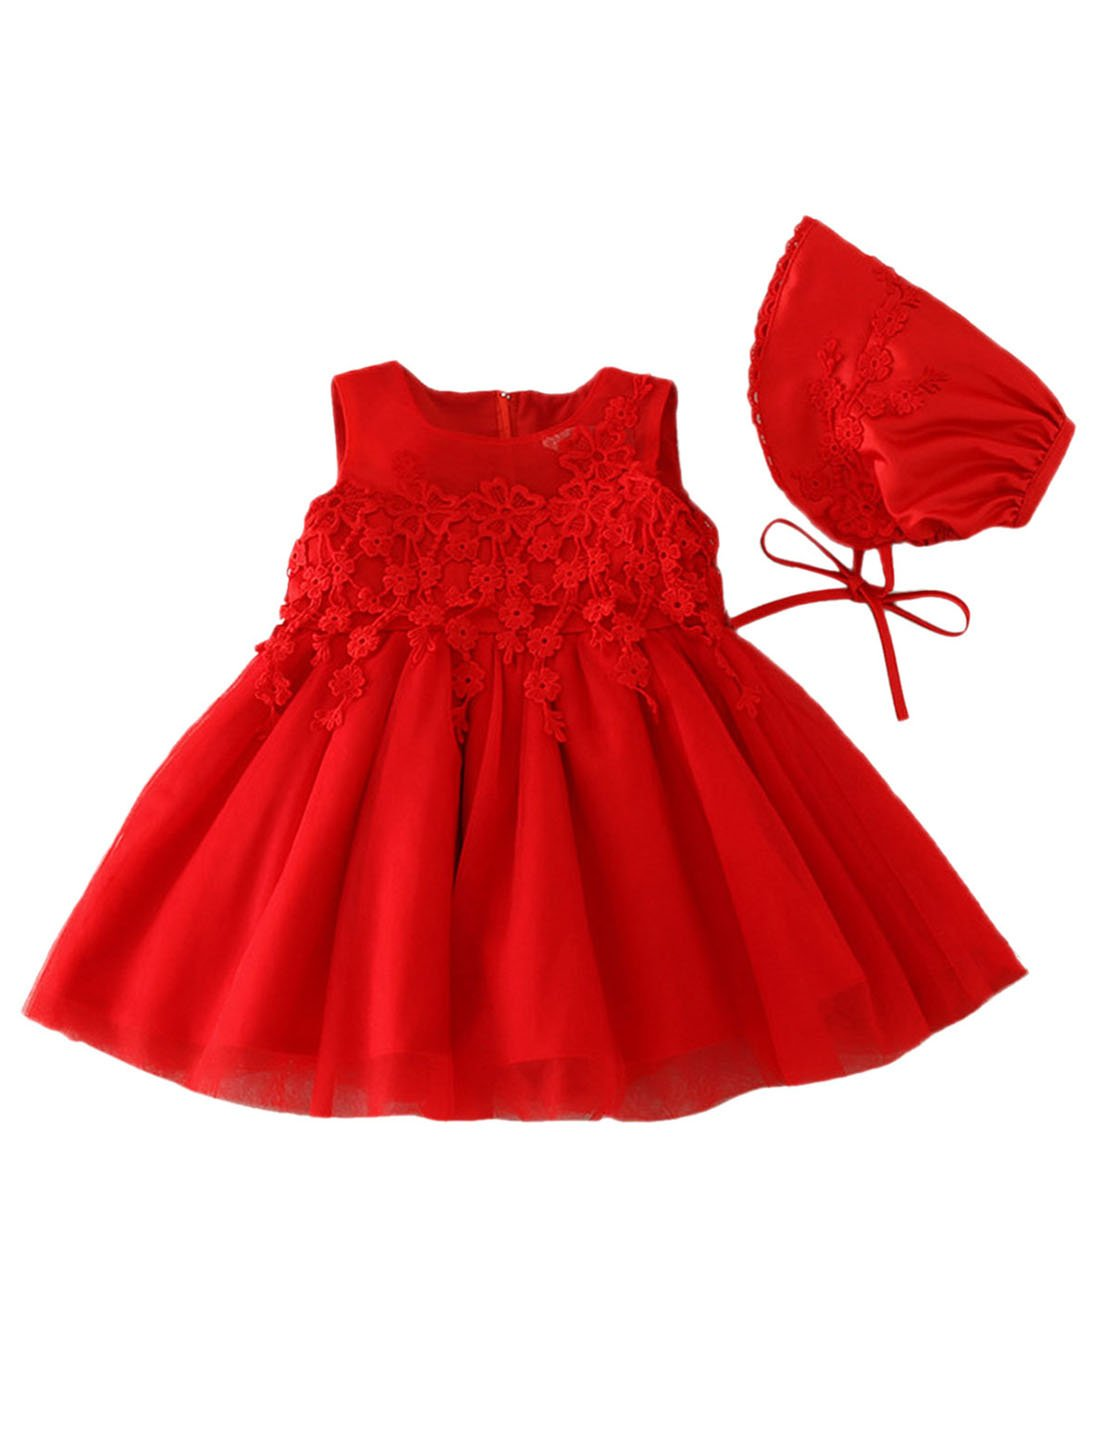 Little Girls Christening Gown with Bonnet Floral Embroidered Wedding Tulle Dress Happy Cherry